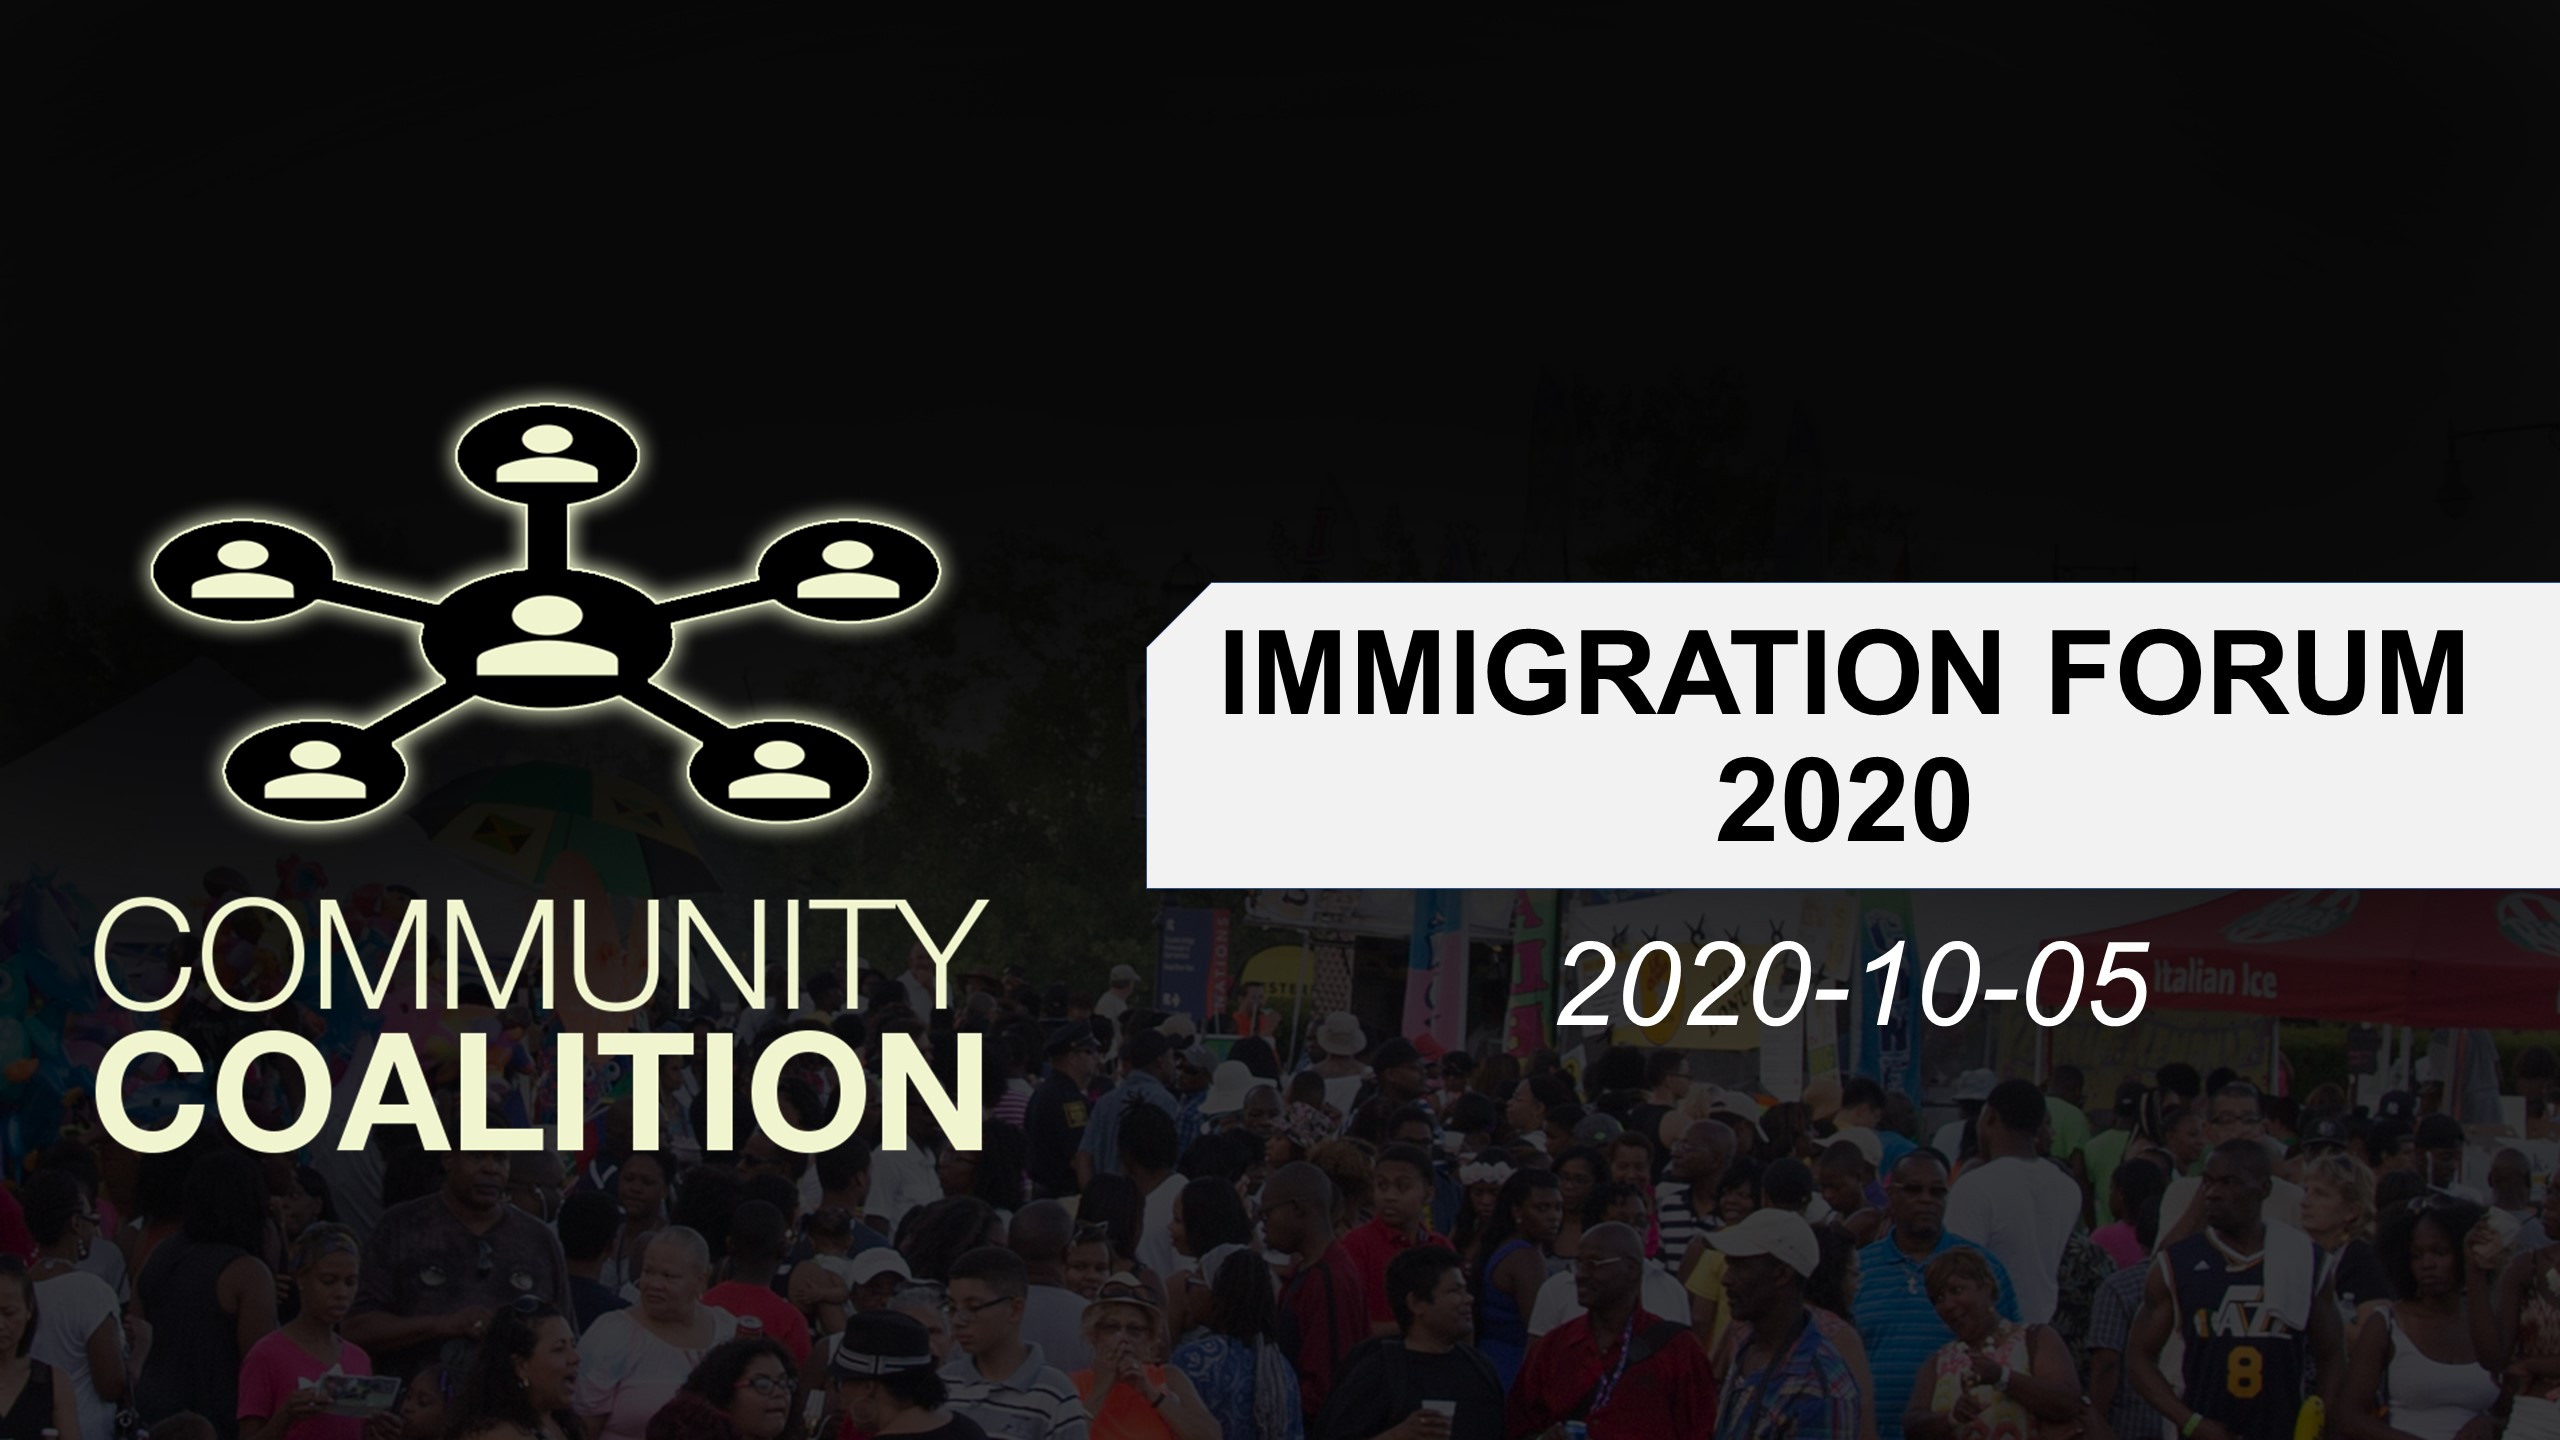 Immigration Forum 2020 – Immigration Education Virtual Video Series